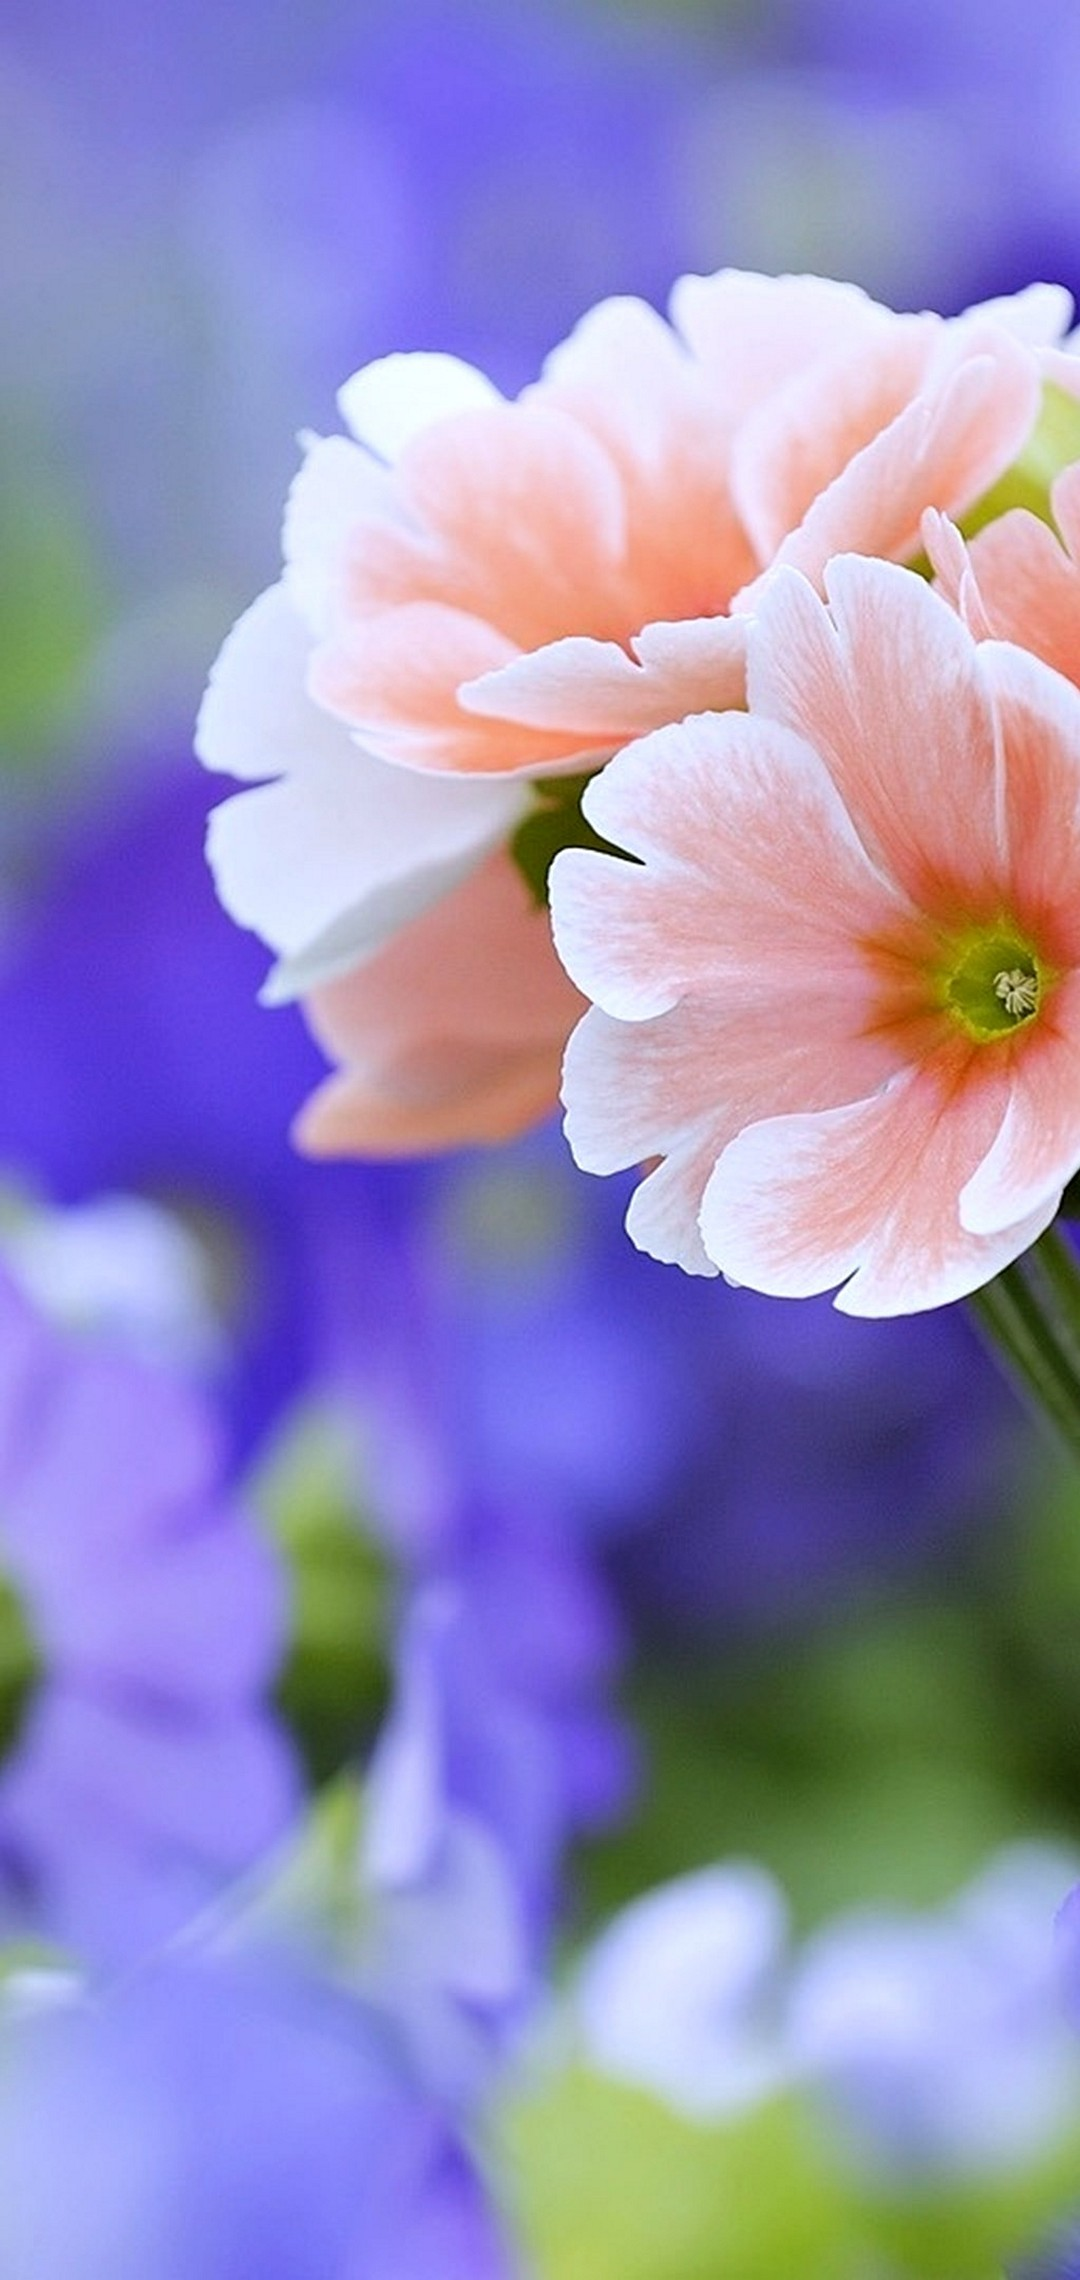 Beautiful Flowers Wallpaper Beautiful Flowers Wallpapers Hd 768x1536 Download Hd Wallpaper Wallpapertip